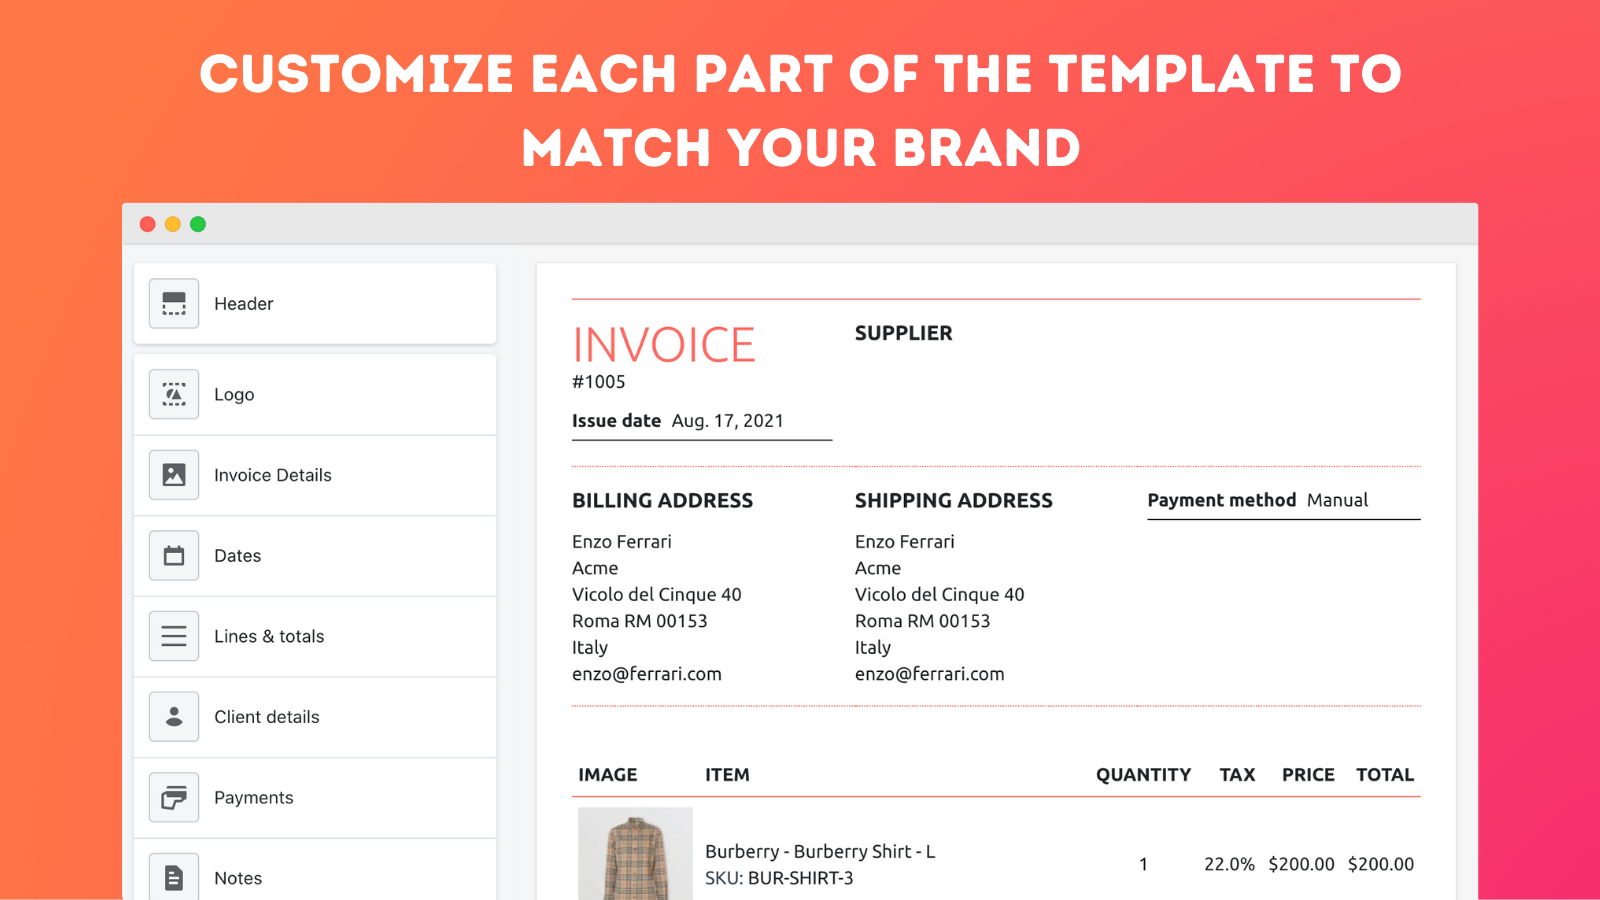 Customize each part of the template to match your brand